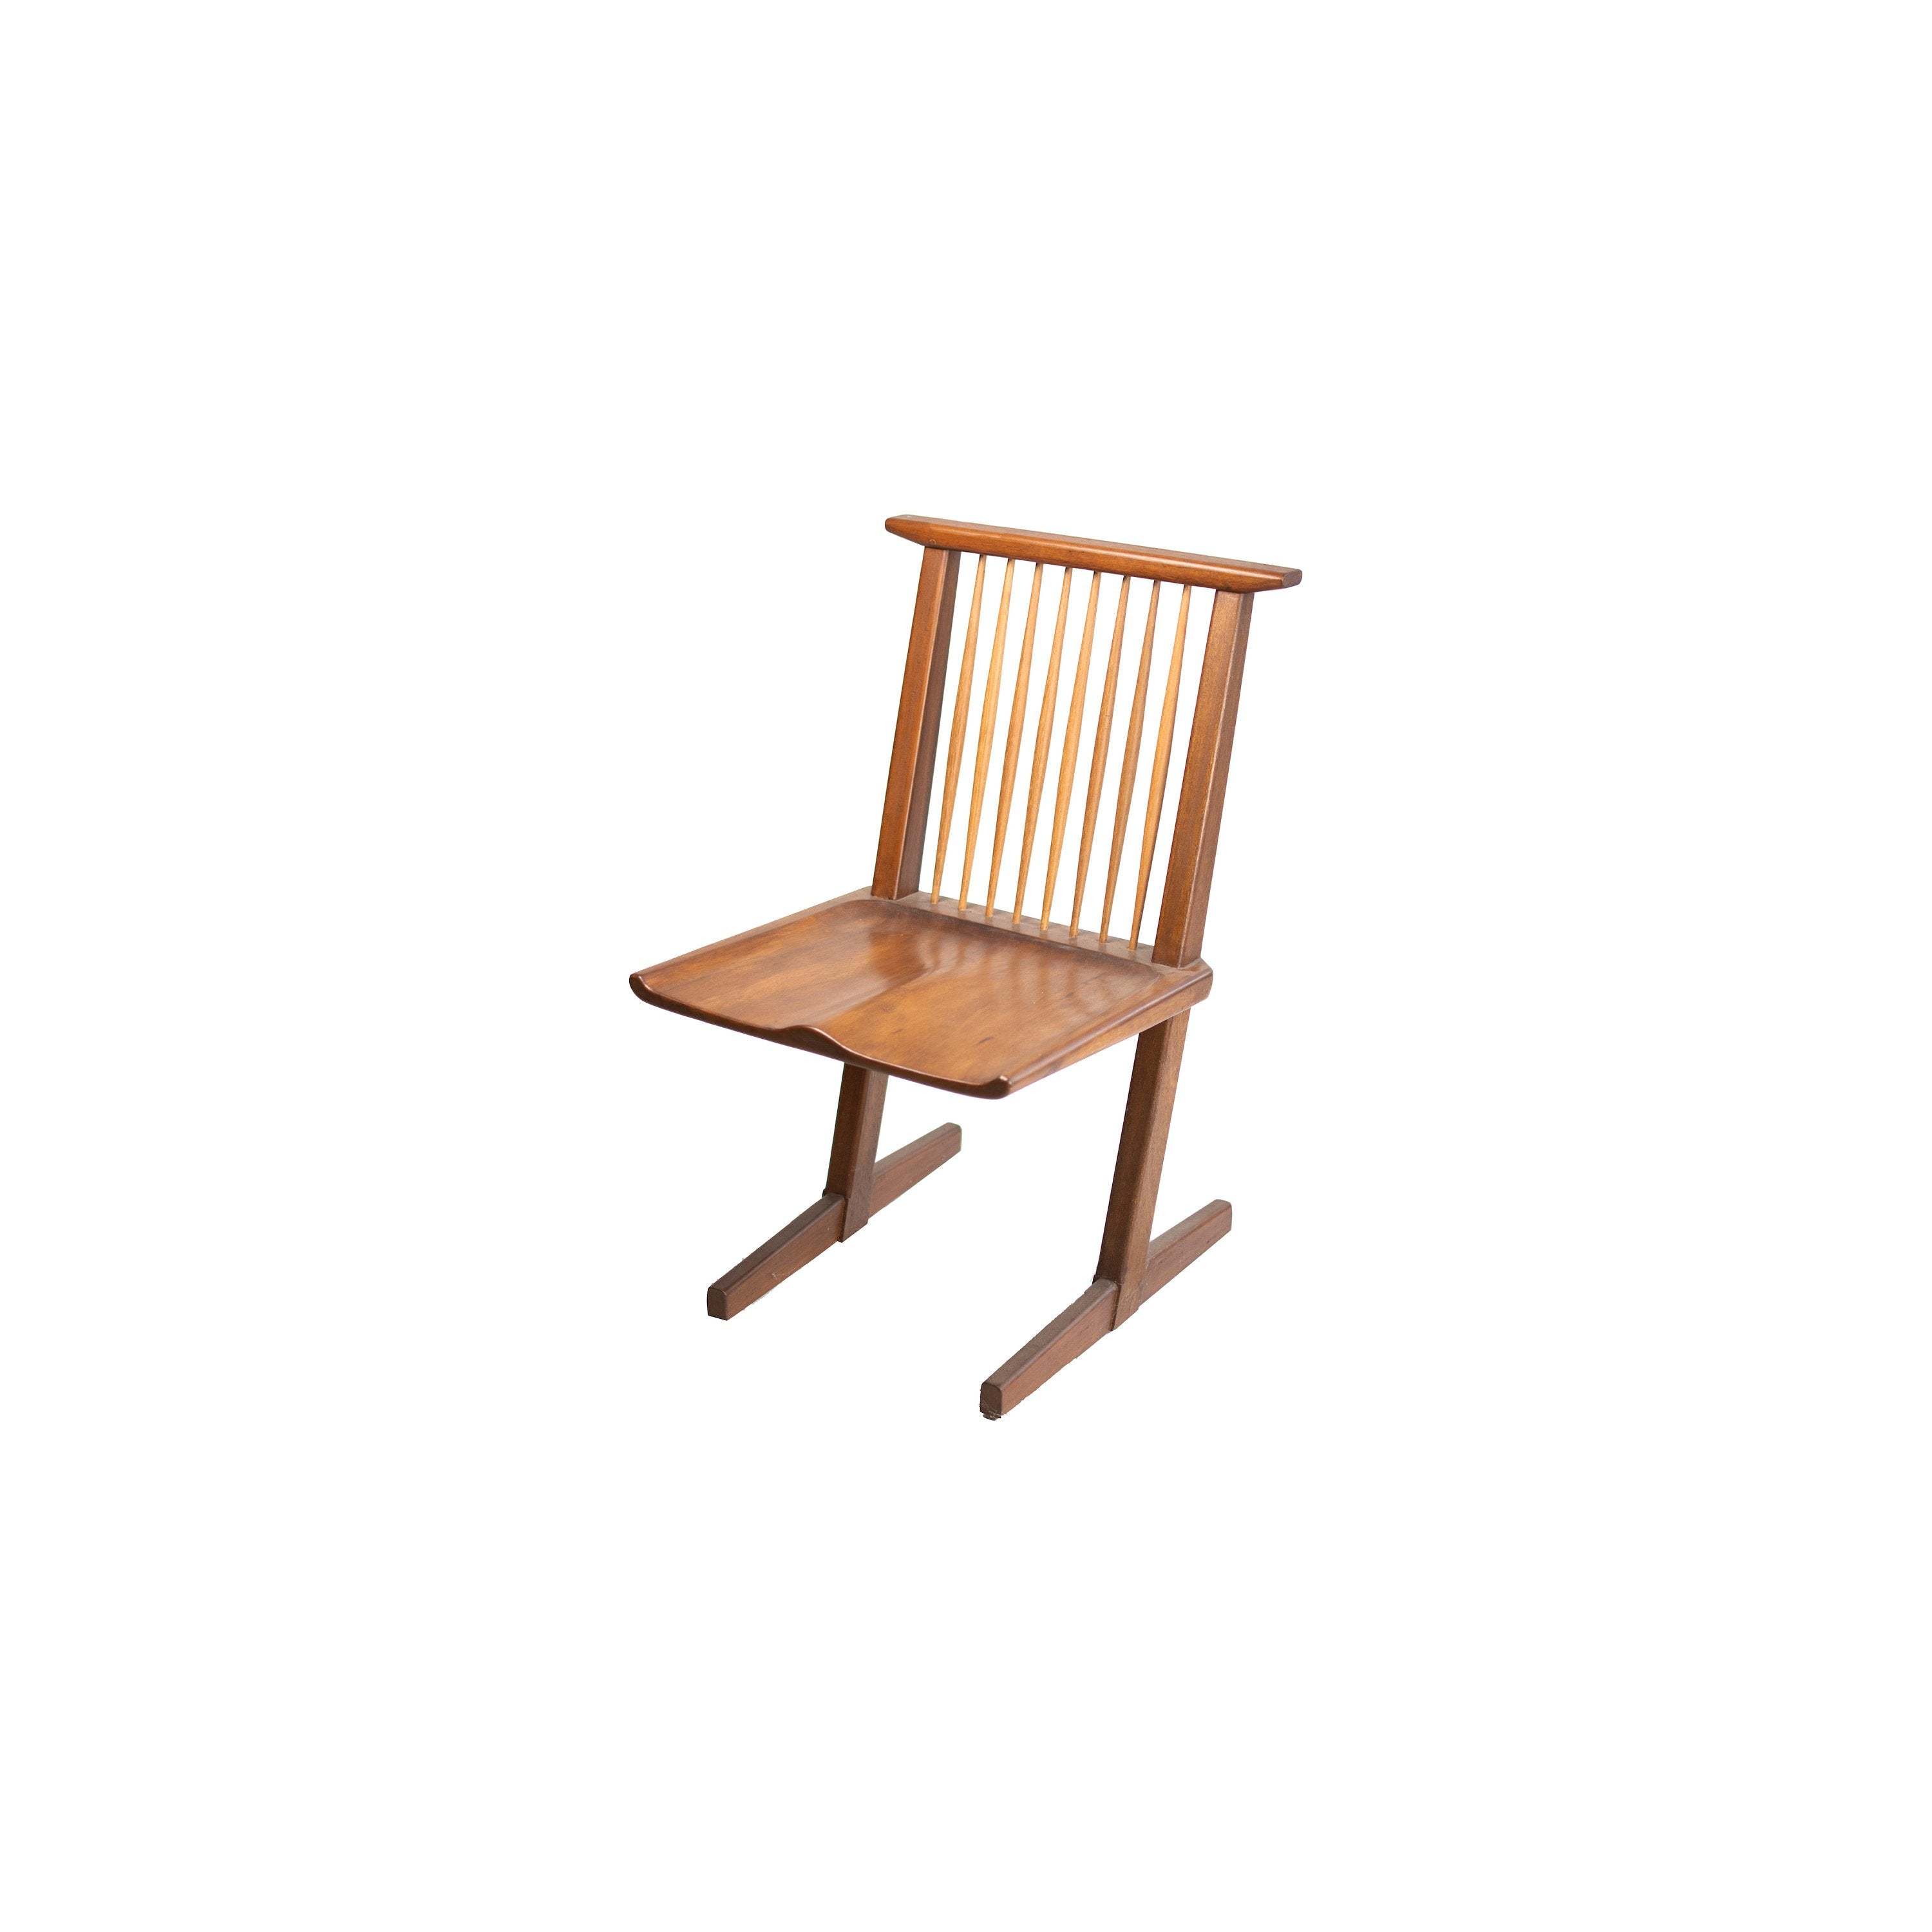 Solid wood collection chair - handmade dining, living or entry room